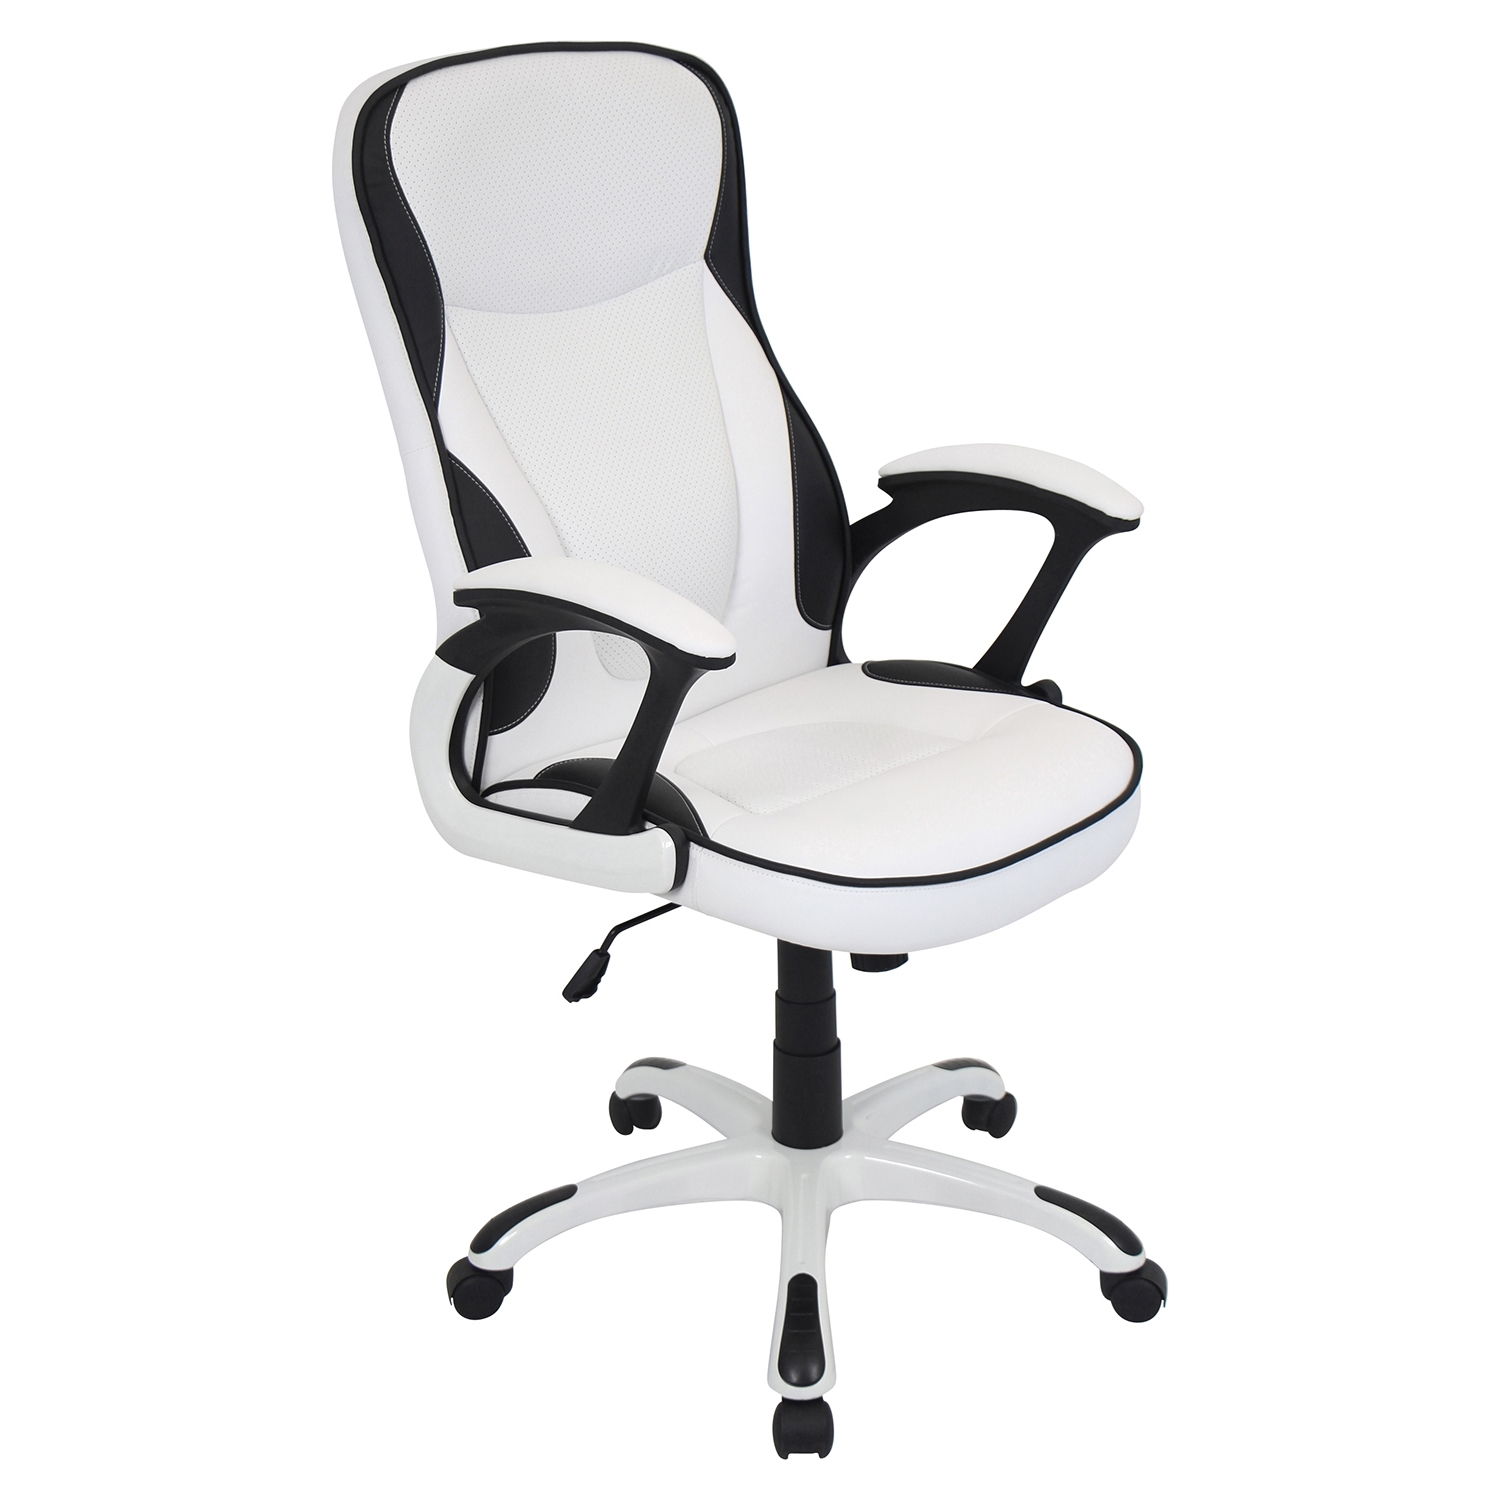 Storm Height Adjustable Office Chair - Swivel, White